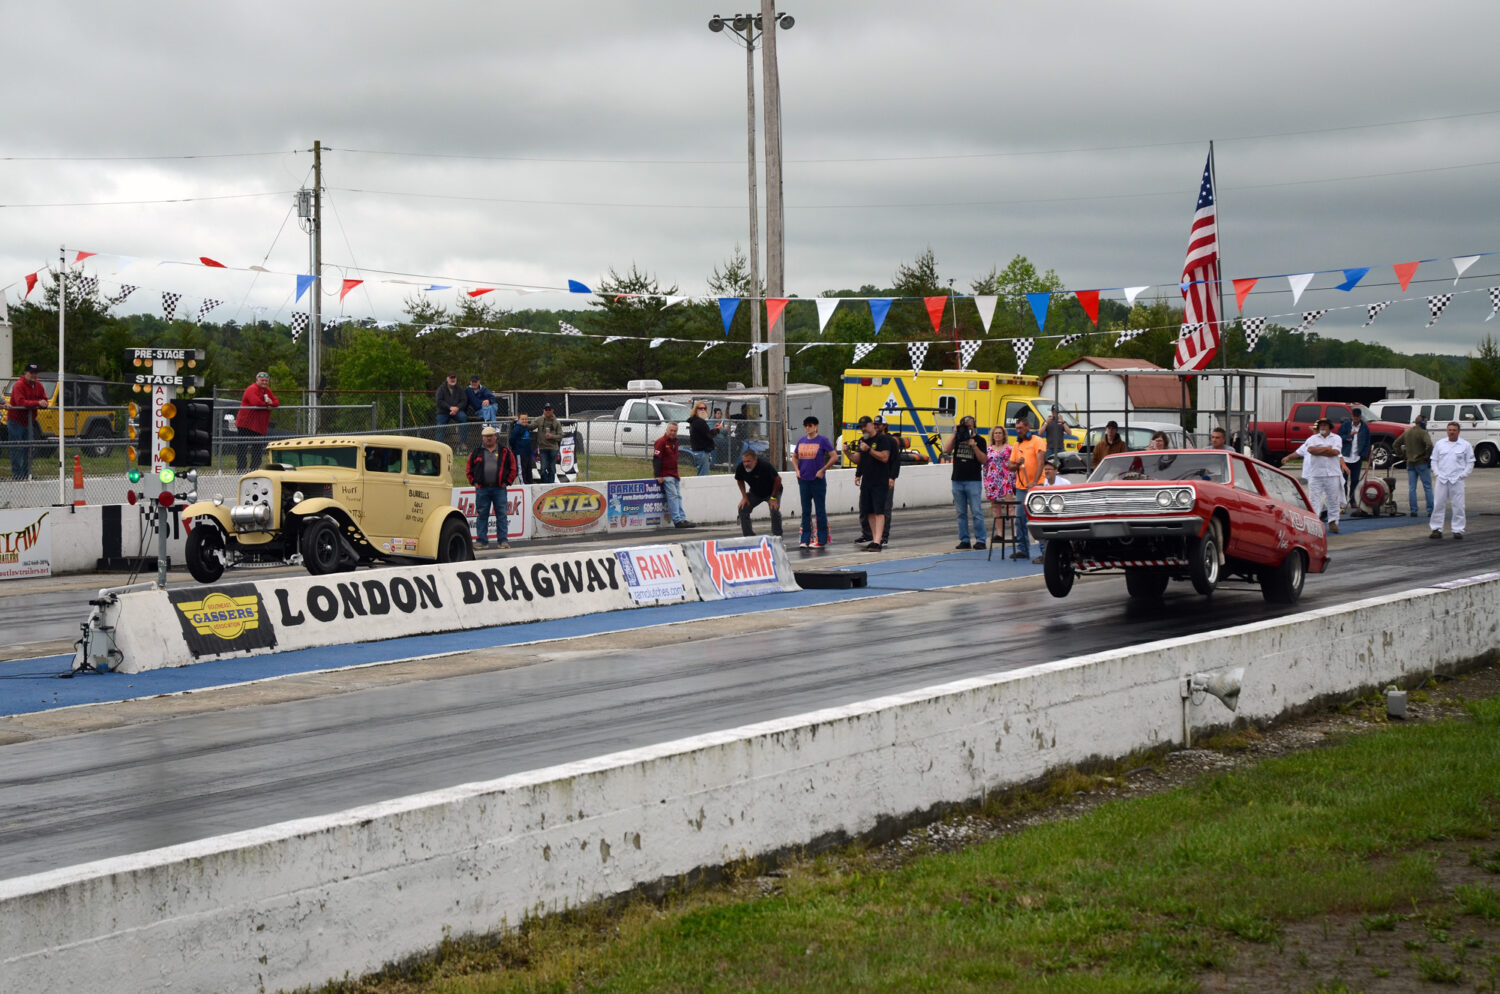 Show Coverage - Southeast Gassers, London KY - Car Shows Now